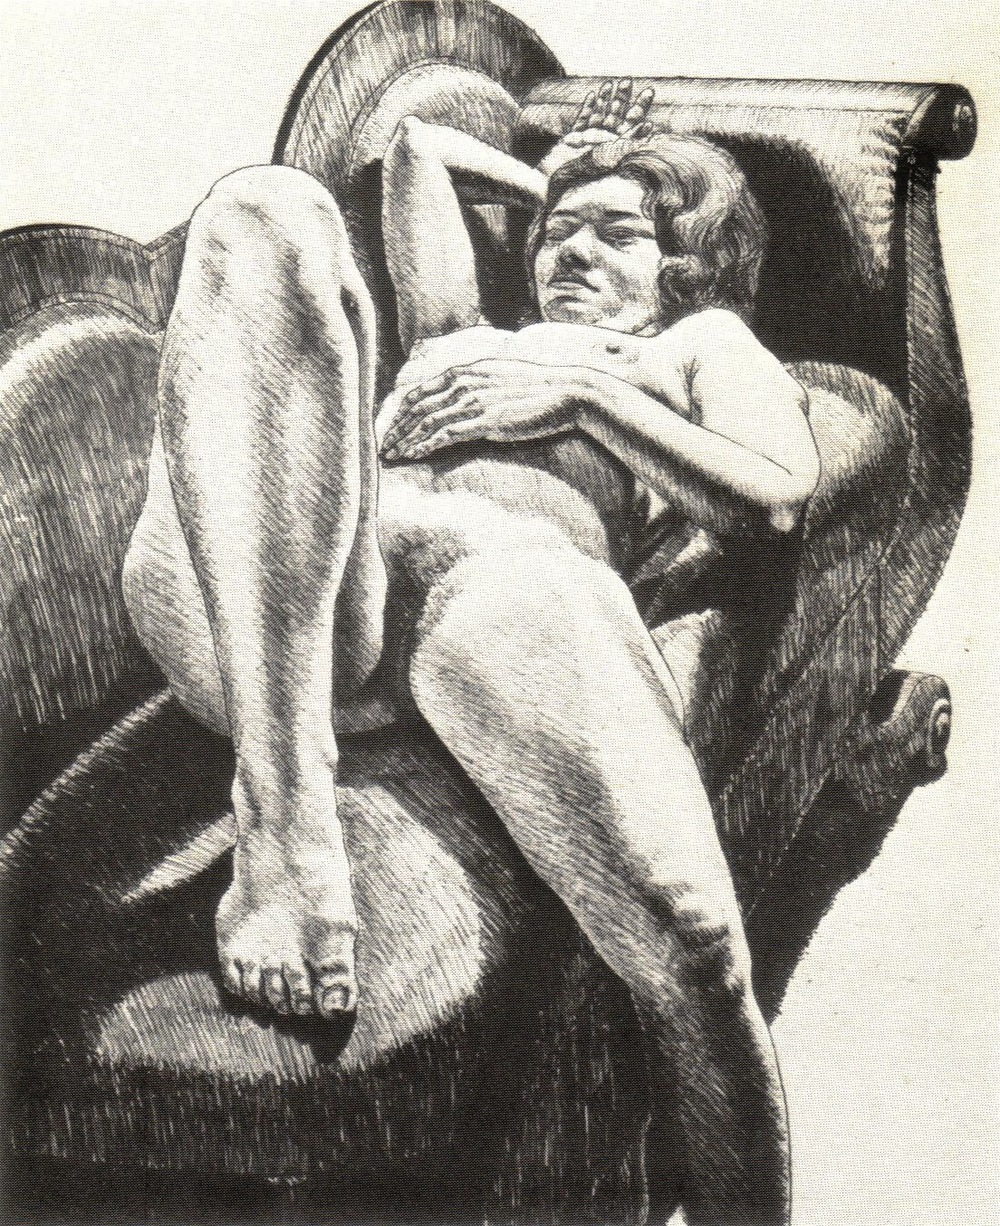 1971, Reclining Nude on Green Couch, 1971, Lithograph, 68.6x55.9 cm.jpg